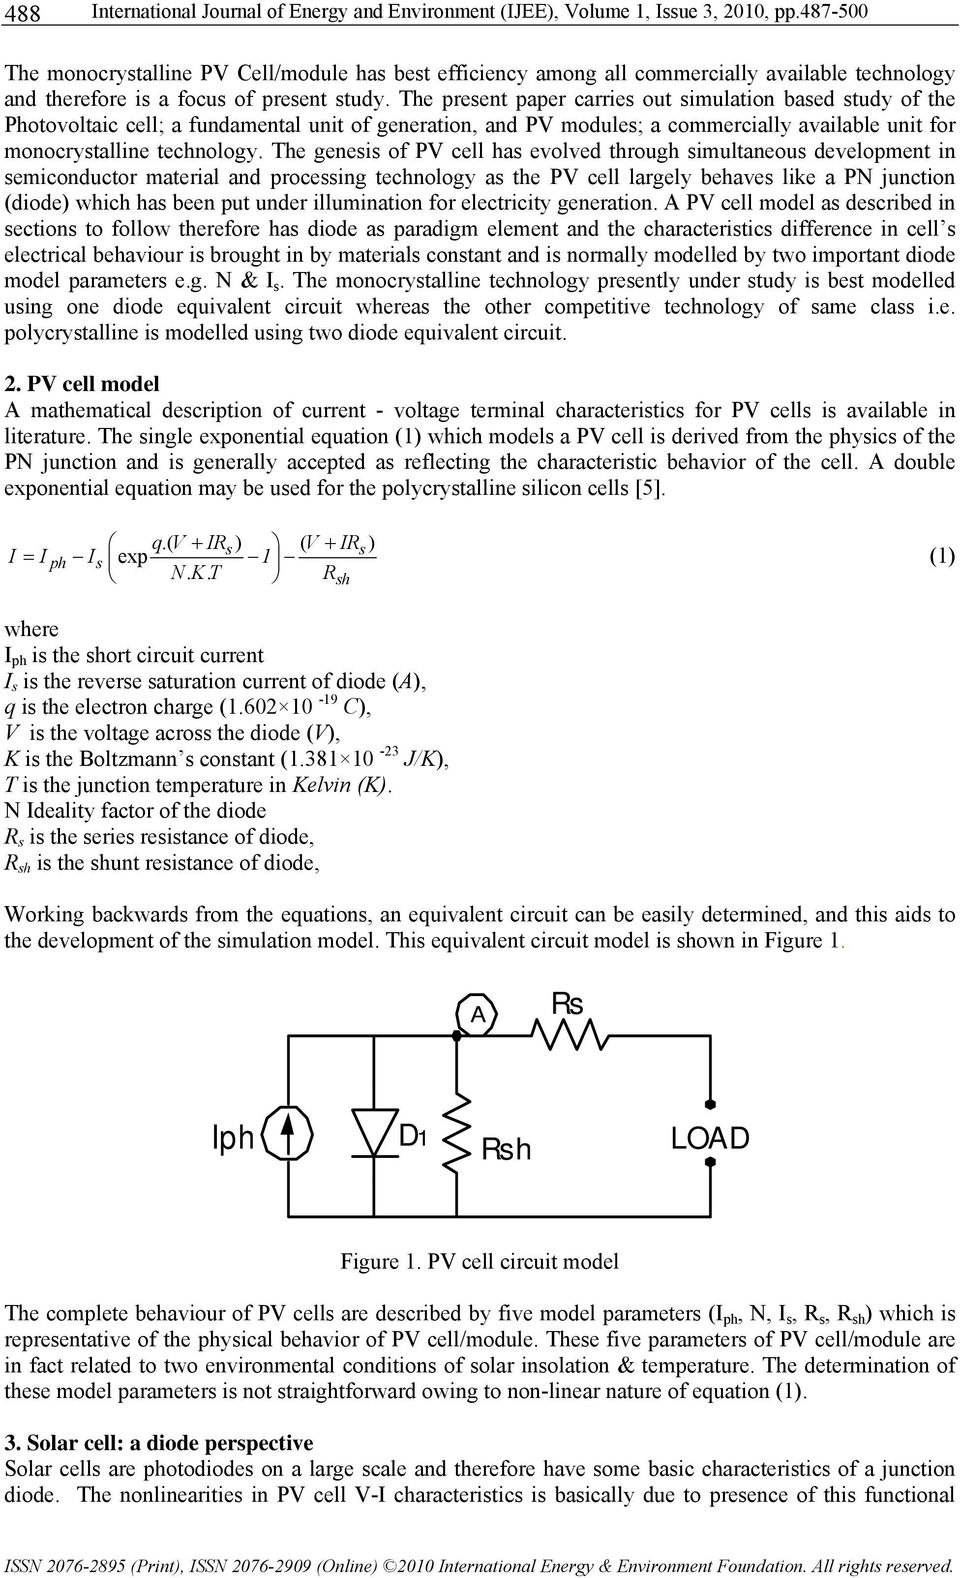 Matlab / simulink based study of photovoltaic cells